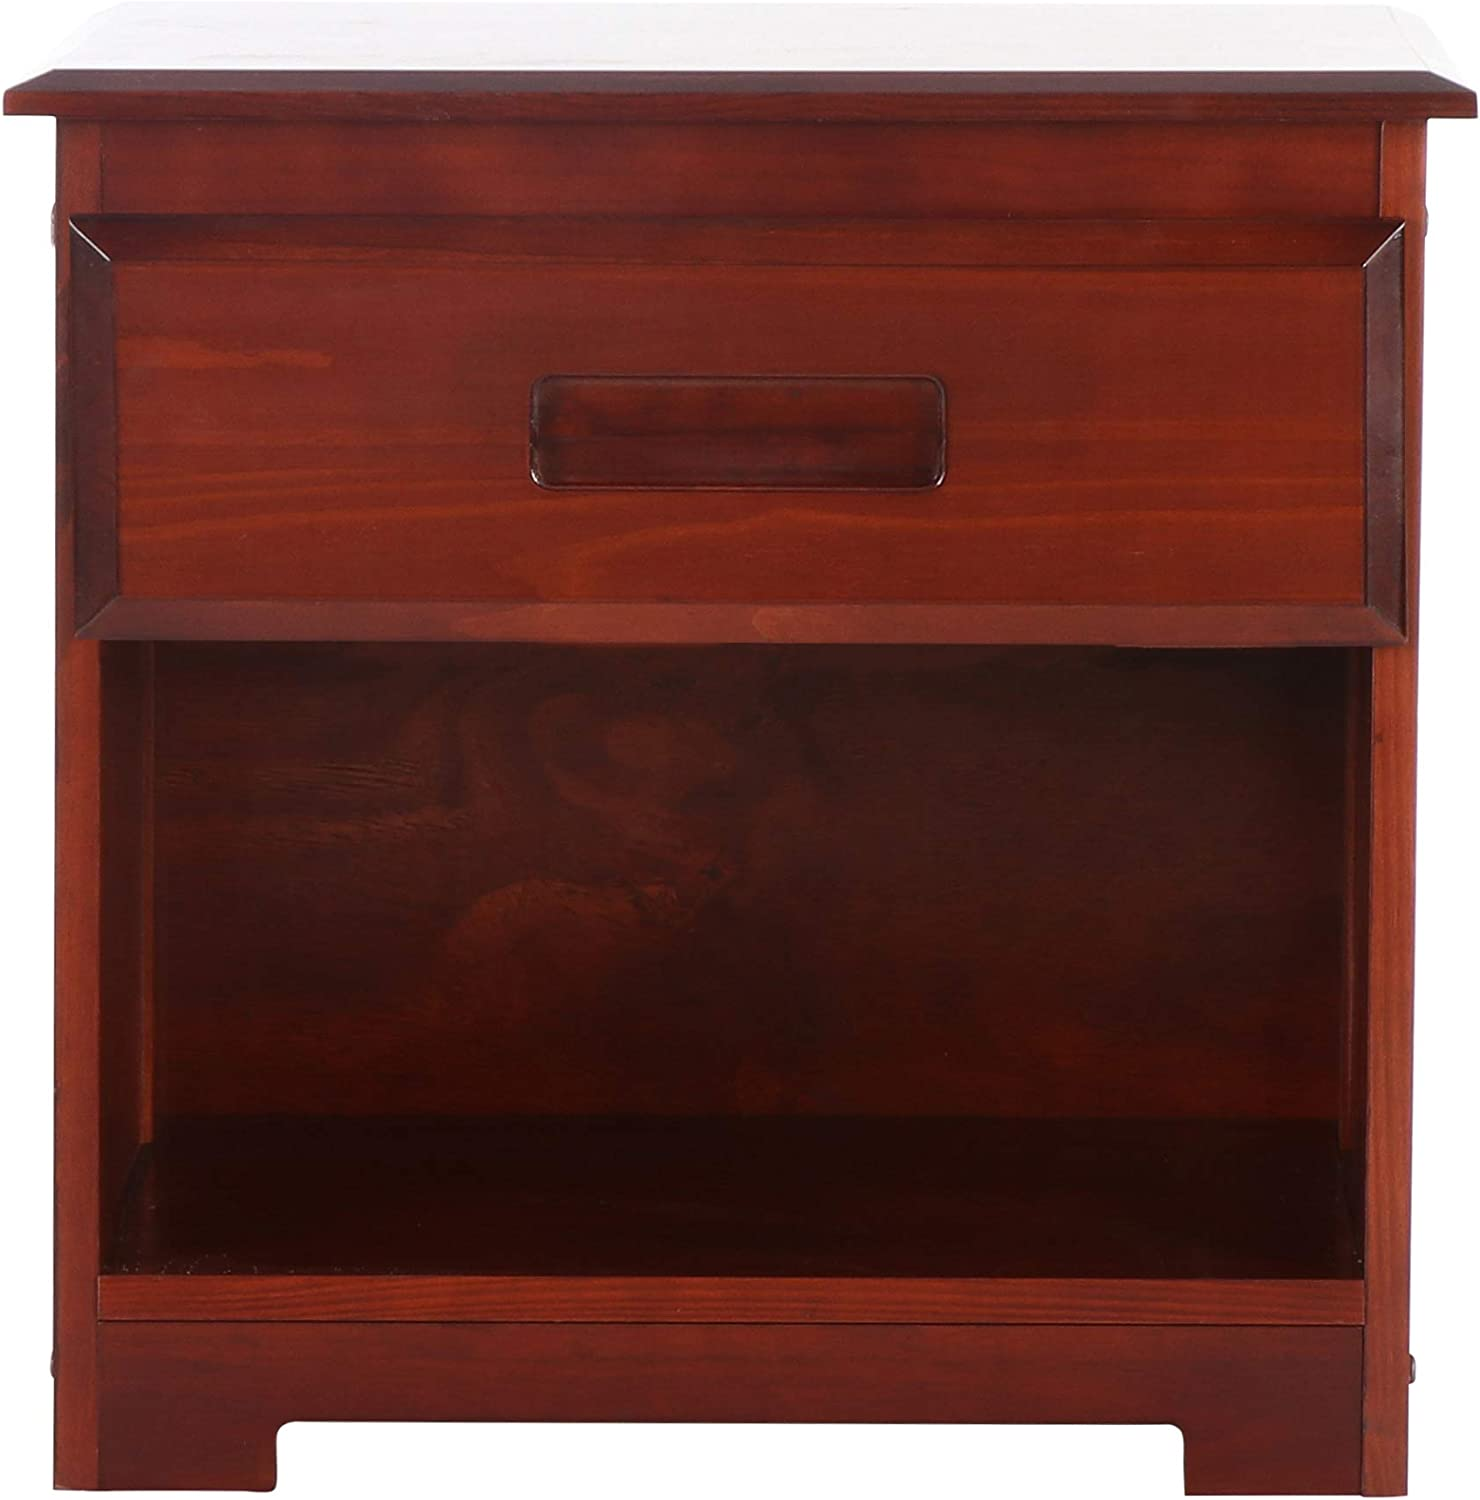 Discovery Max 56% OFF World Furniture Nighstand Max 61% OFF Merlot